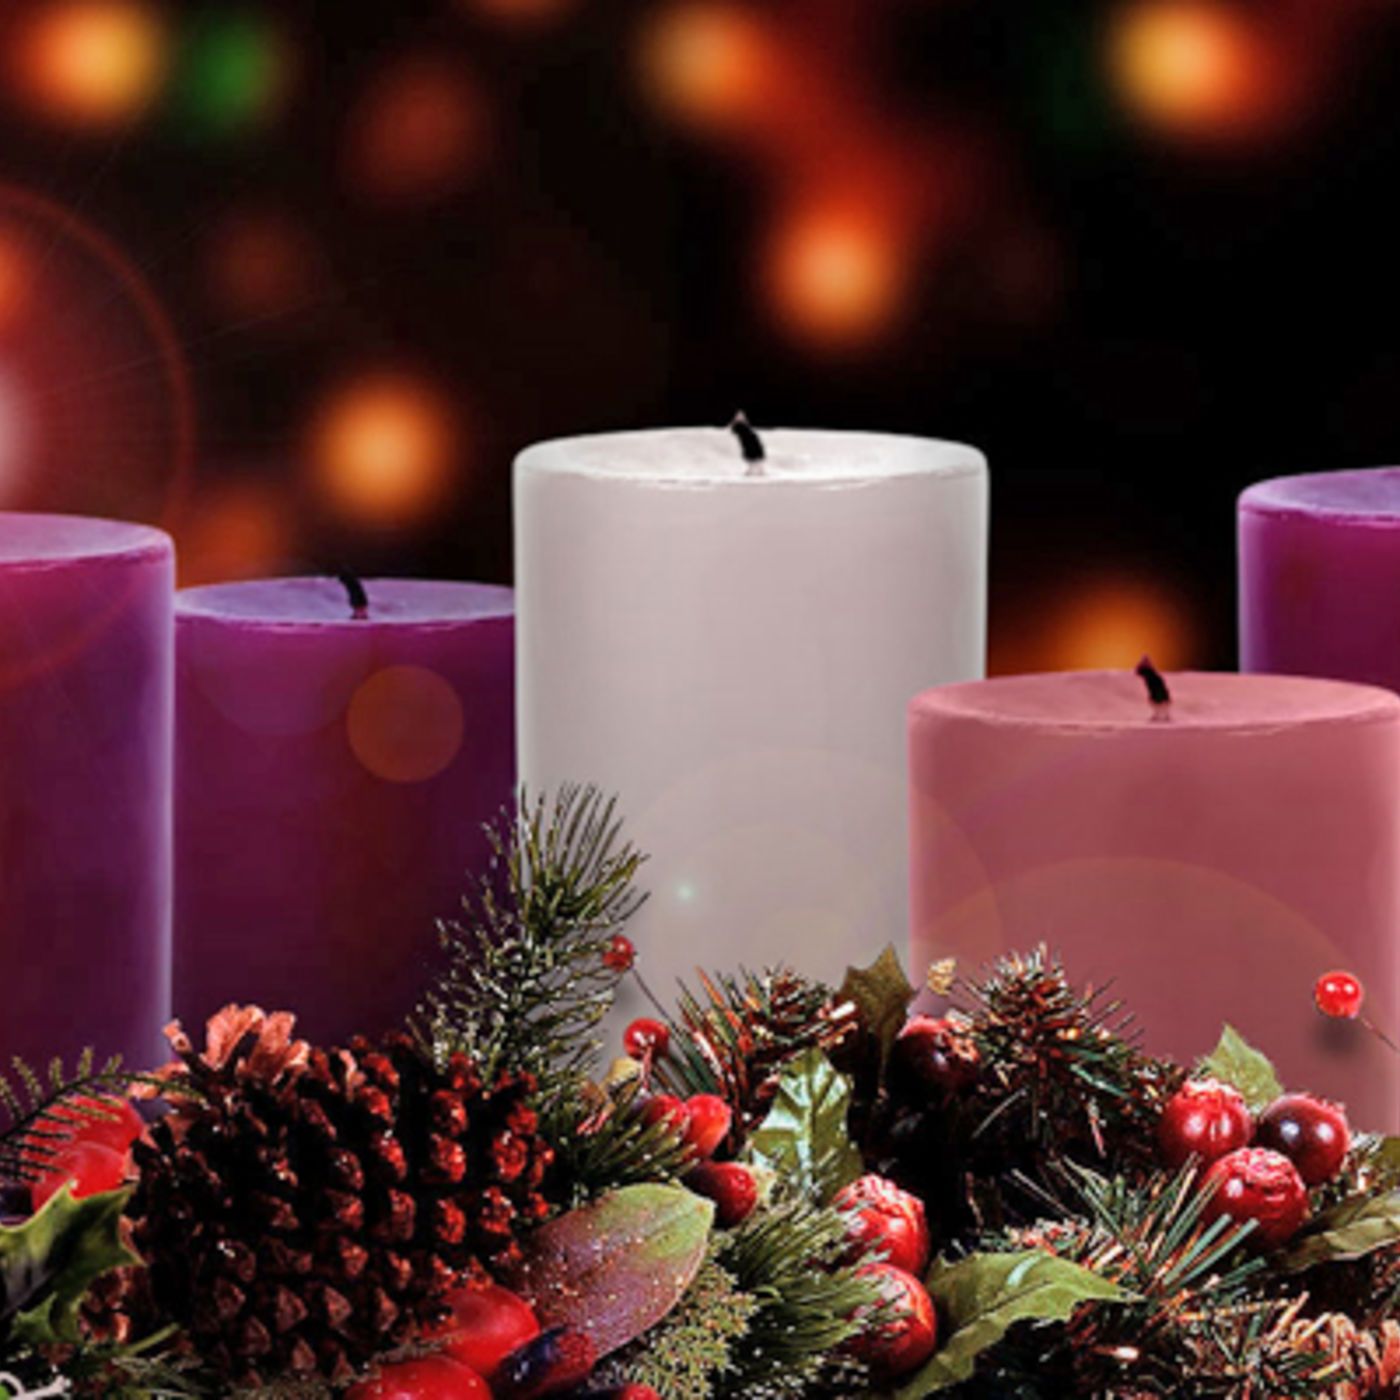 2nd December 2018, The First Sunday of Advent